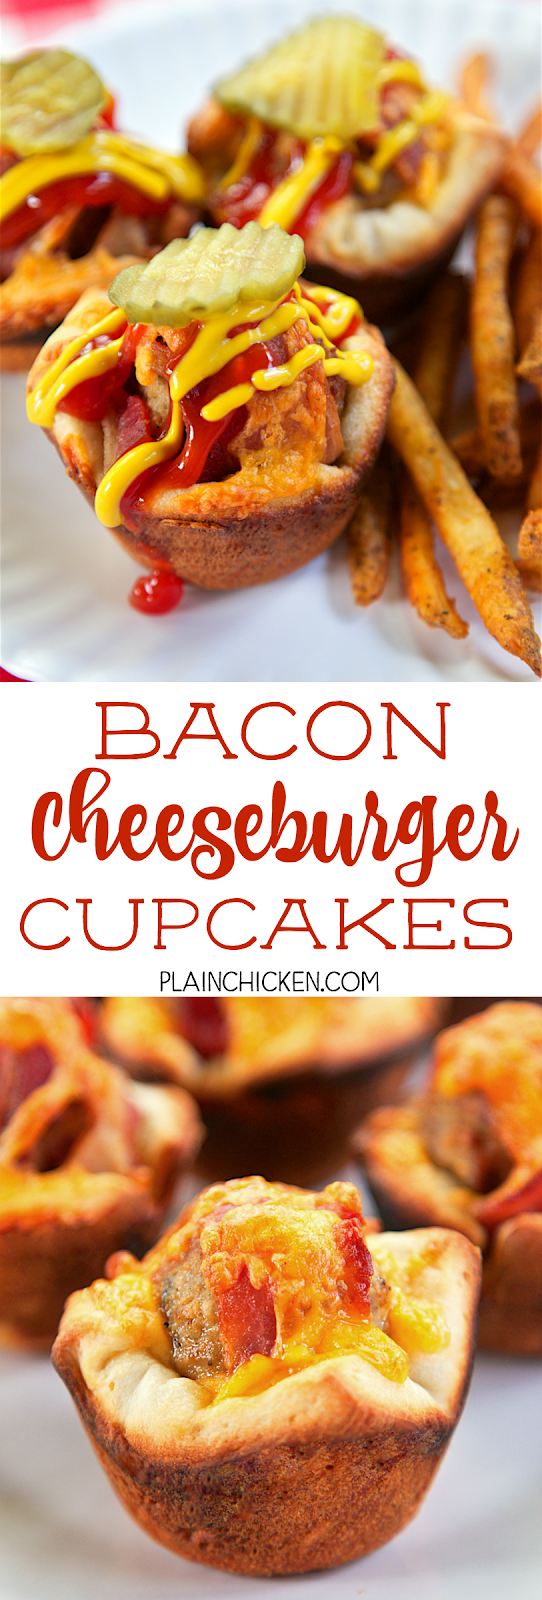 Bacon Cheeseburger Cupcakes - only 4 ingredients! Refrigerated pizza crust, frozen meatballs, precooked bacon and cheese. Ready in minutes! Great for a quick lunch, dinner or tailgating!! Everyone loves these! Can freeze leftovers for later.